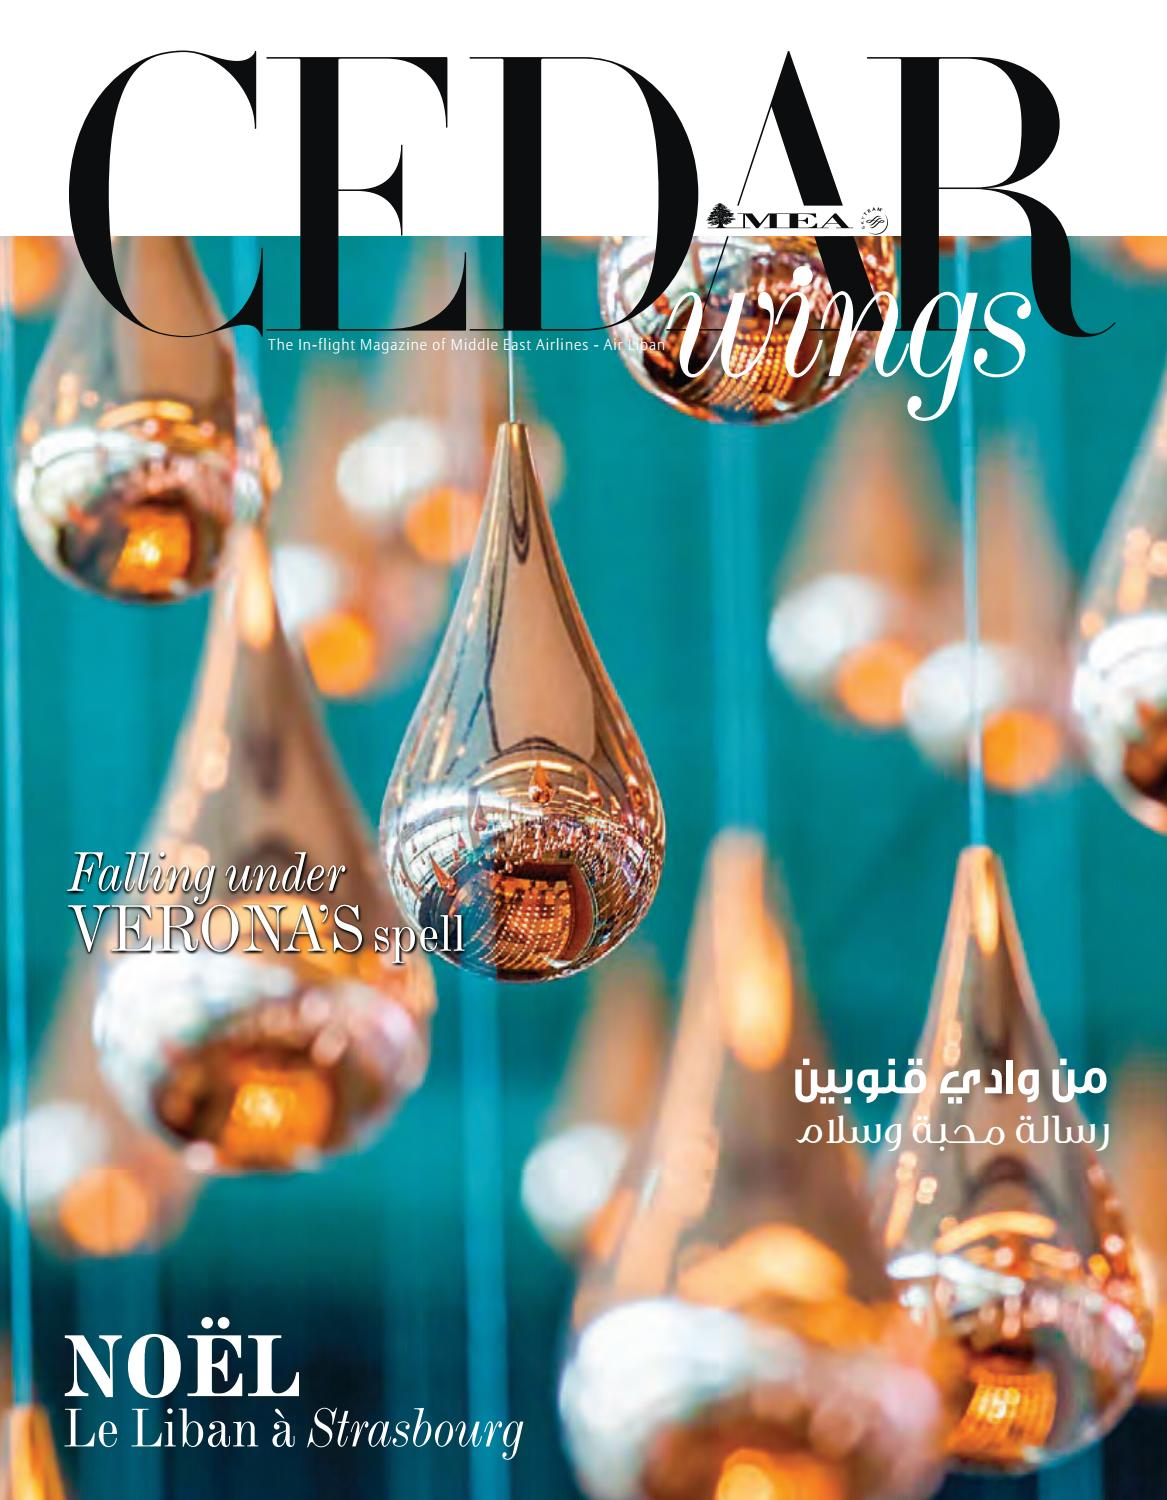 Magasin Accessoire Piscine Strasbourg cedar wings magazine. december 2019 - january 2020